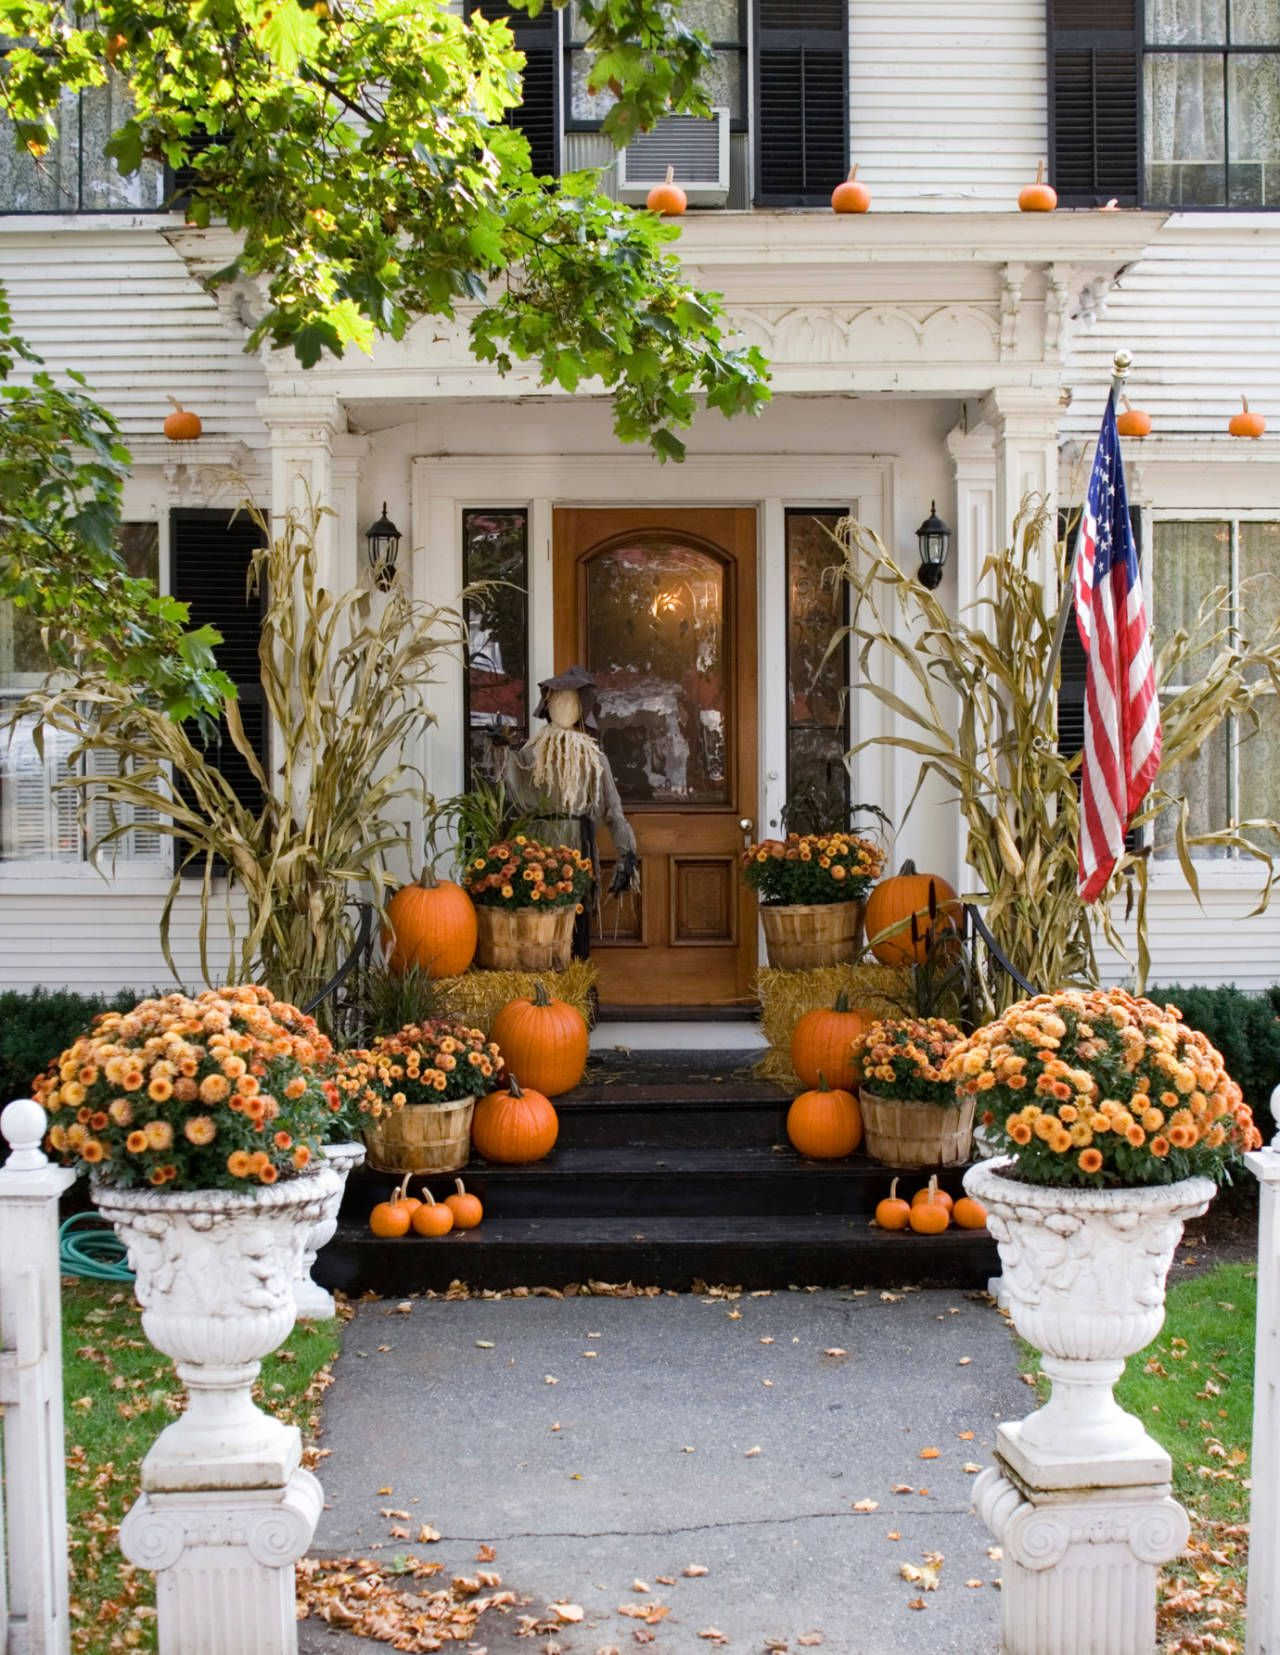 11 Elegant Ways To Decorate With Pumpkins This Fall Pinterest - Elegant Halloween Decor